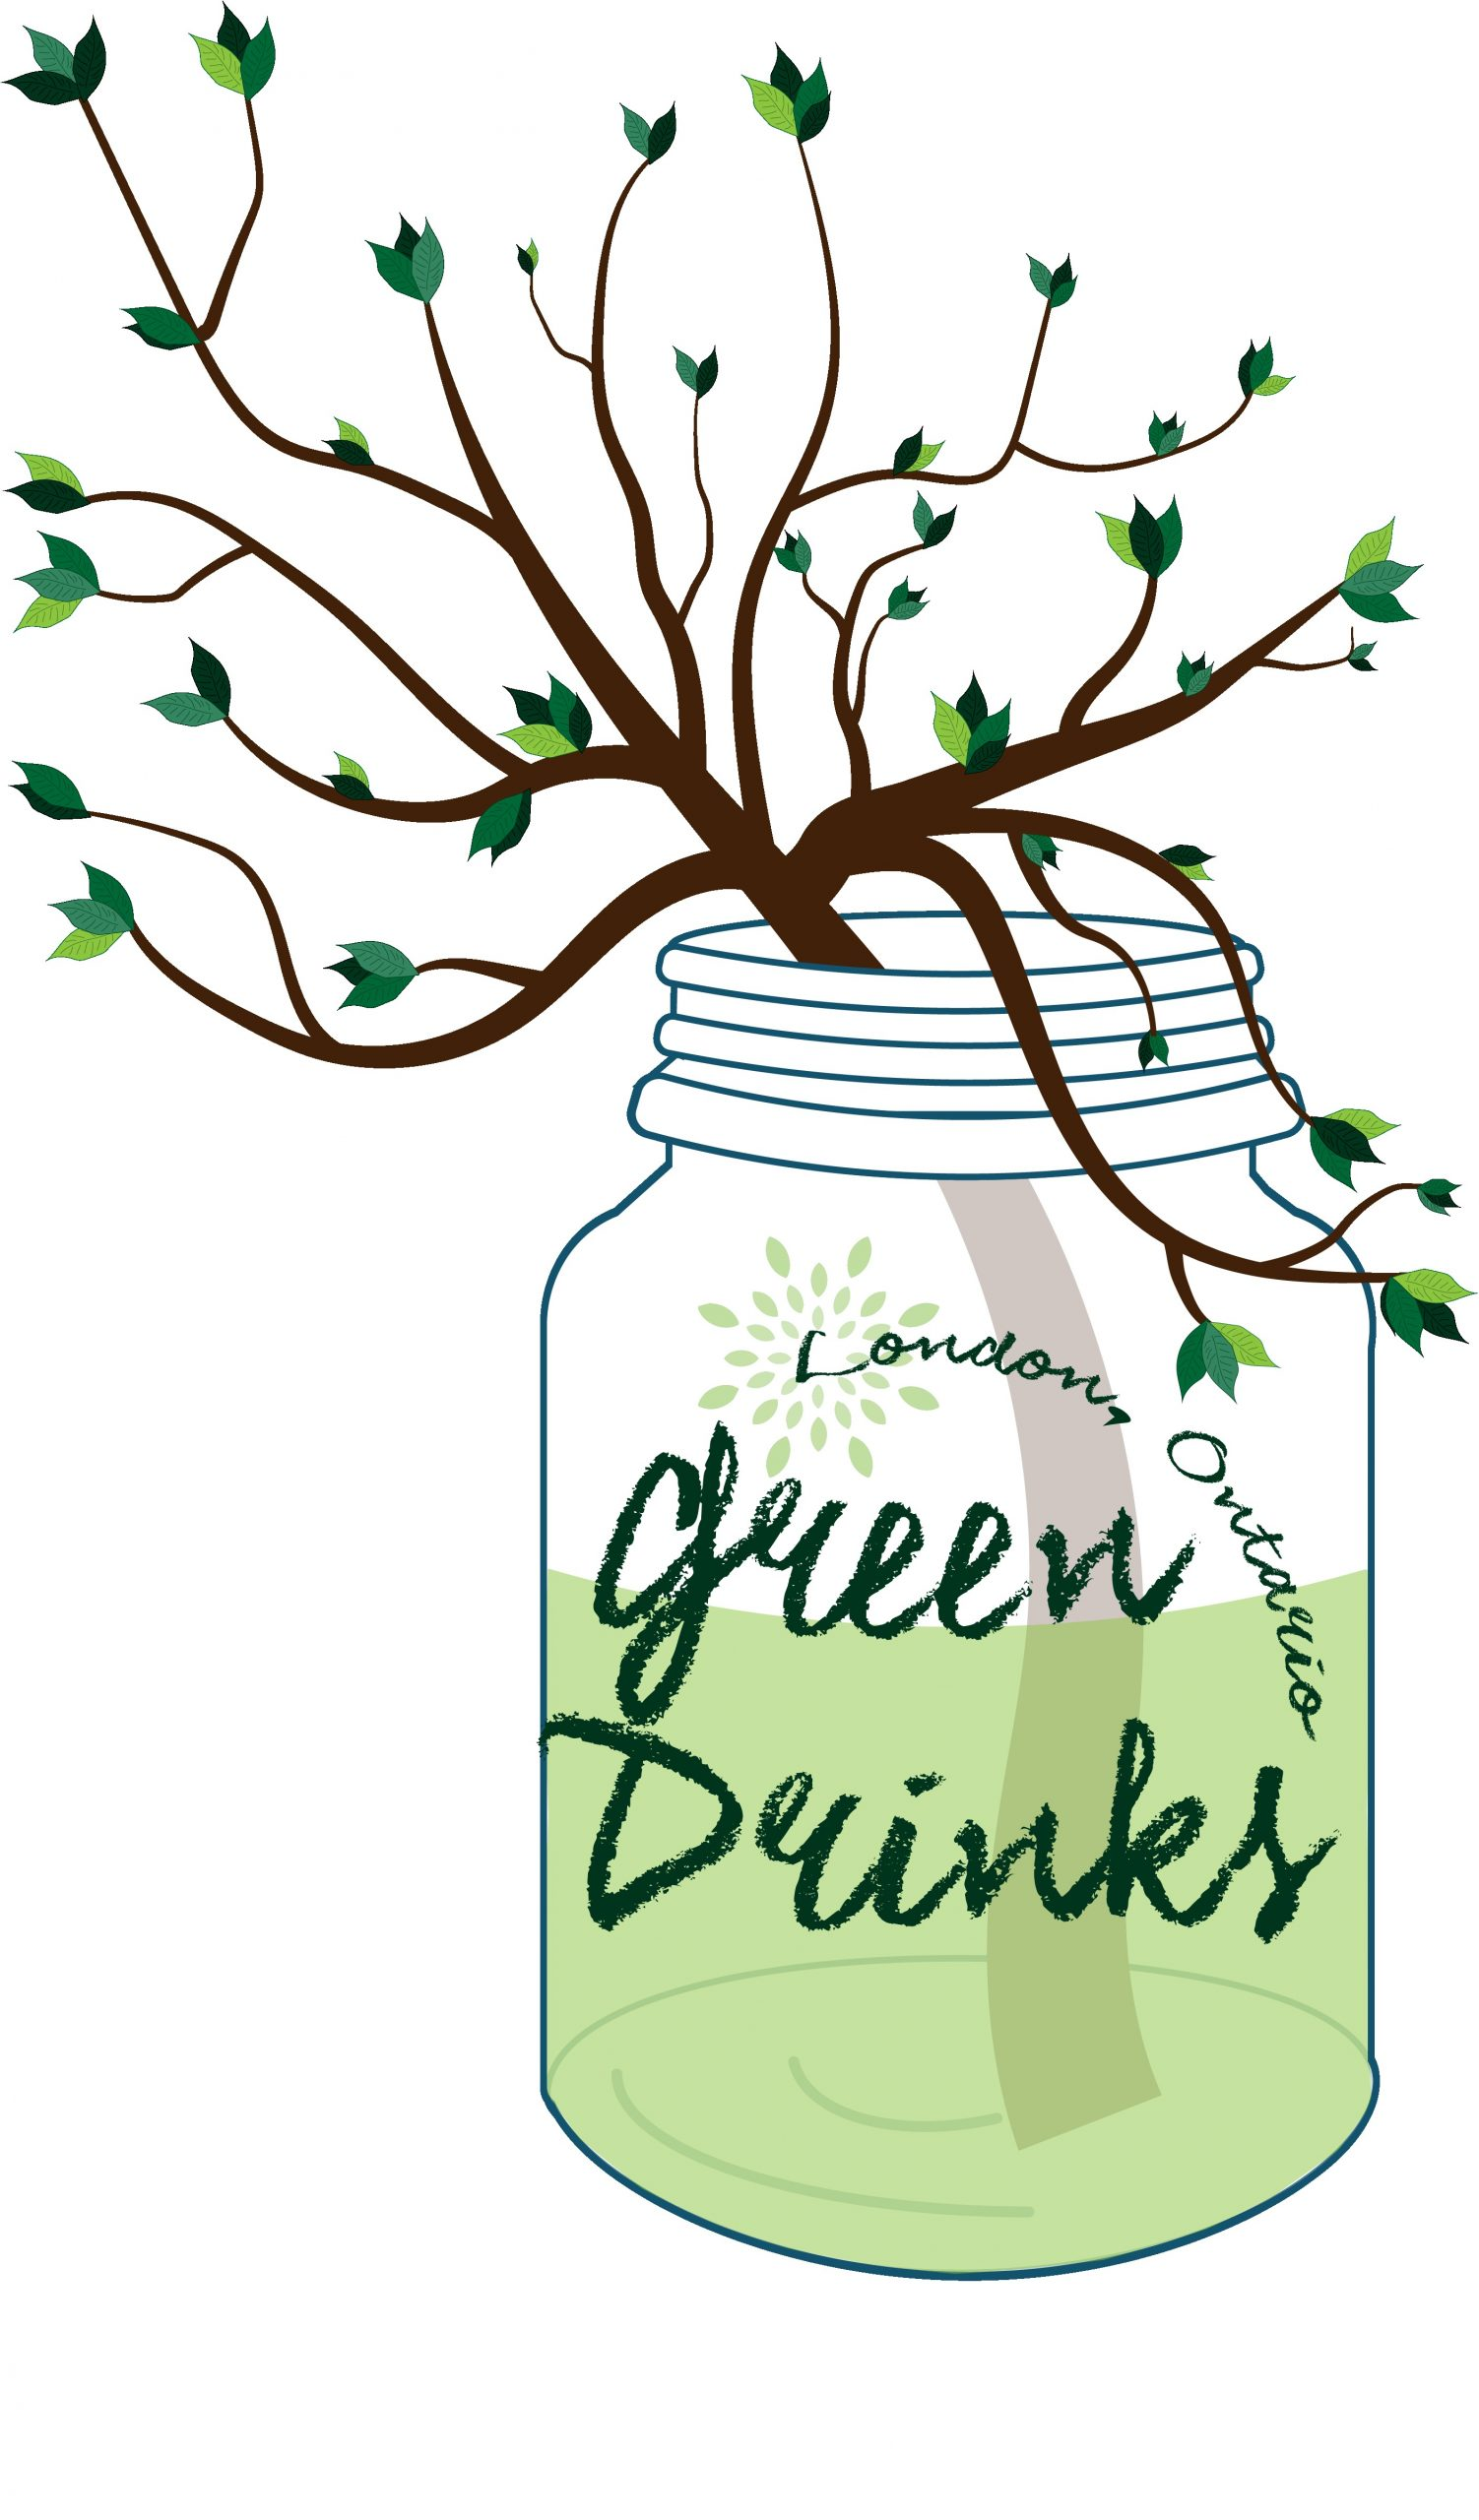 Londoners share their environmental passion through 'Green Drinks'